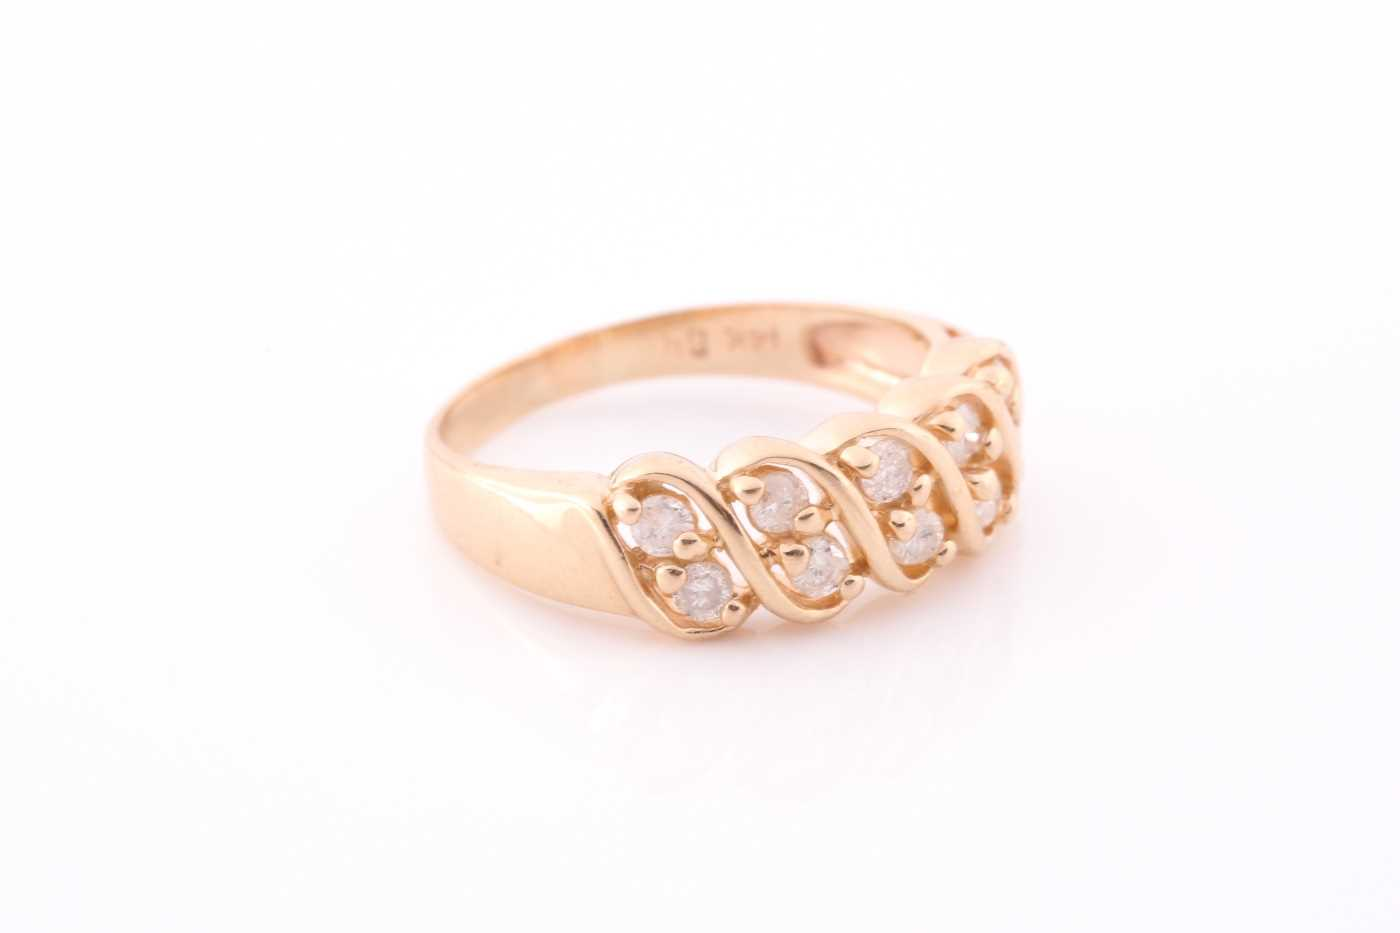 A yellow metal and diamond ring set with two rows of round-cut diamonds of approximately 0.50 carats - Image 4 of 4